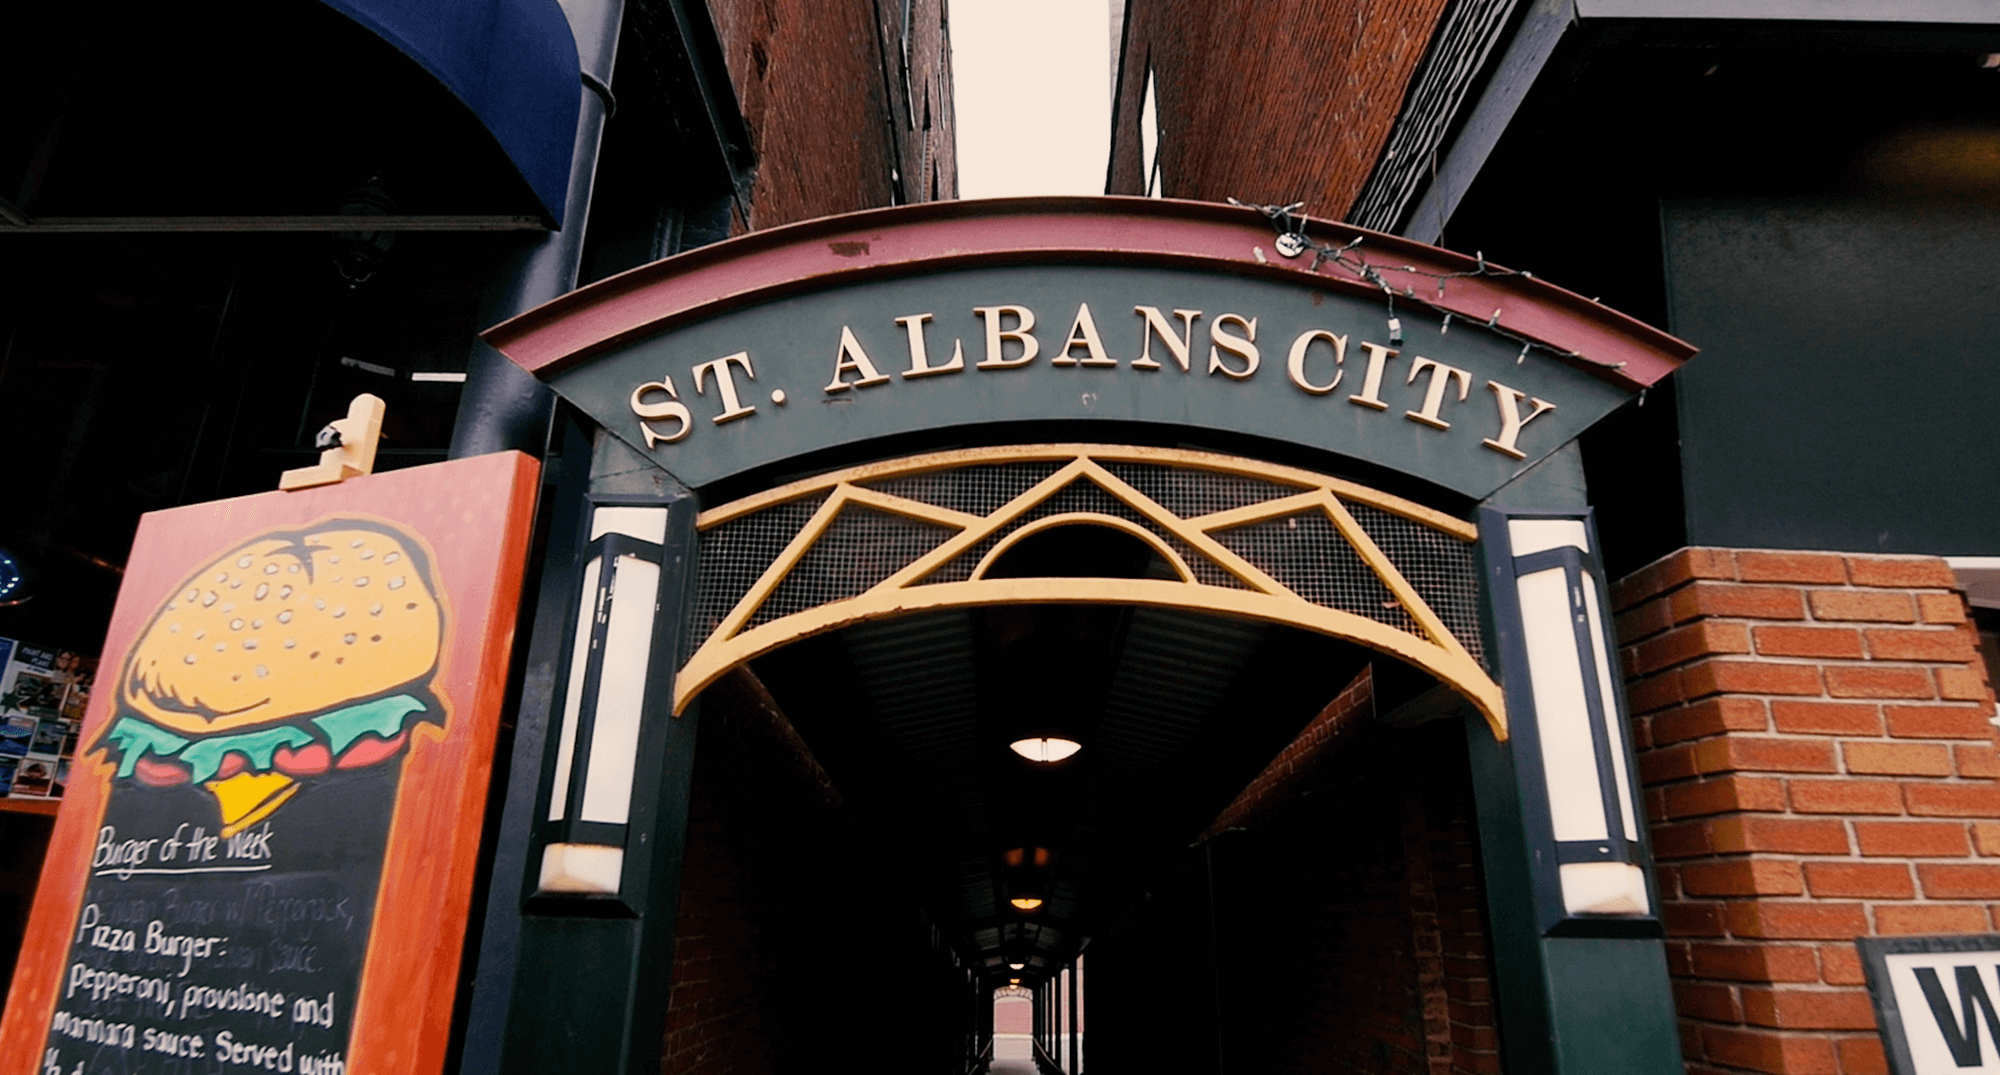 Metal banner that says St. Albans City